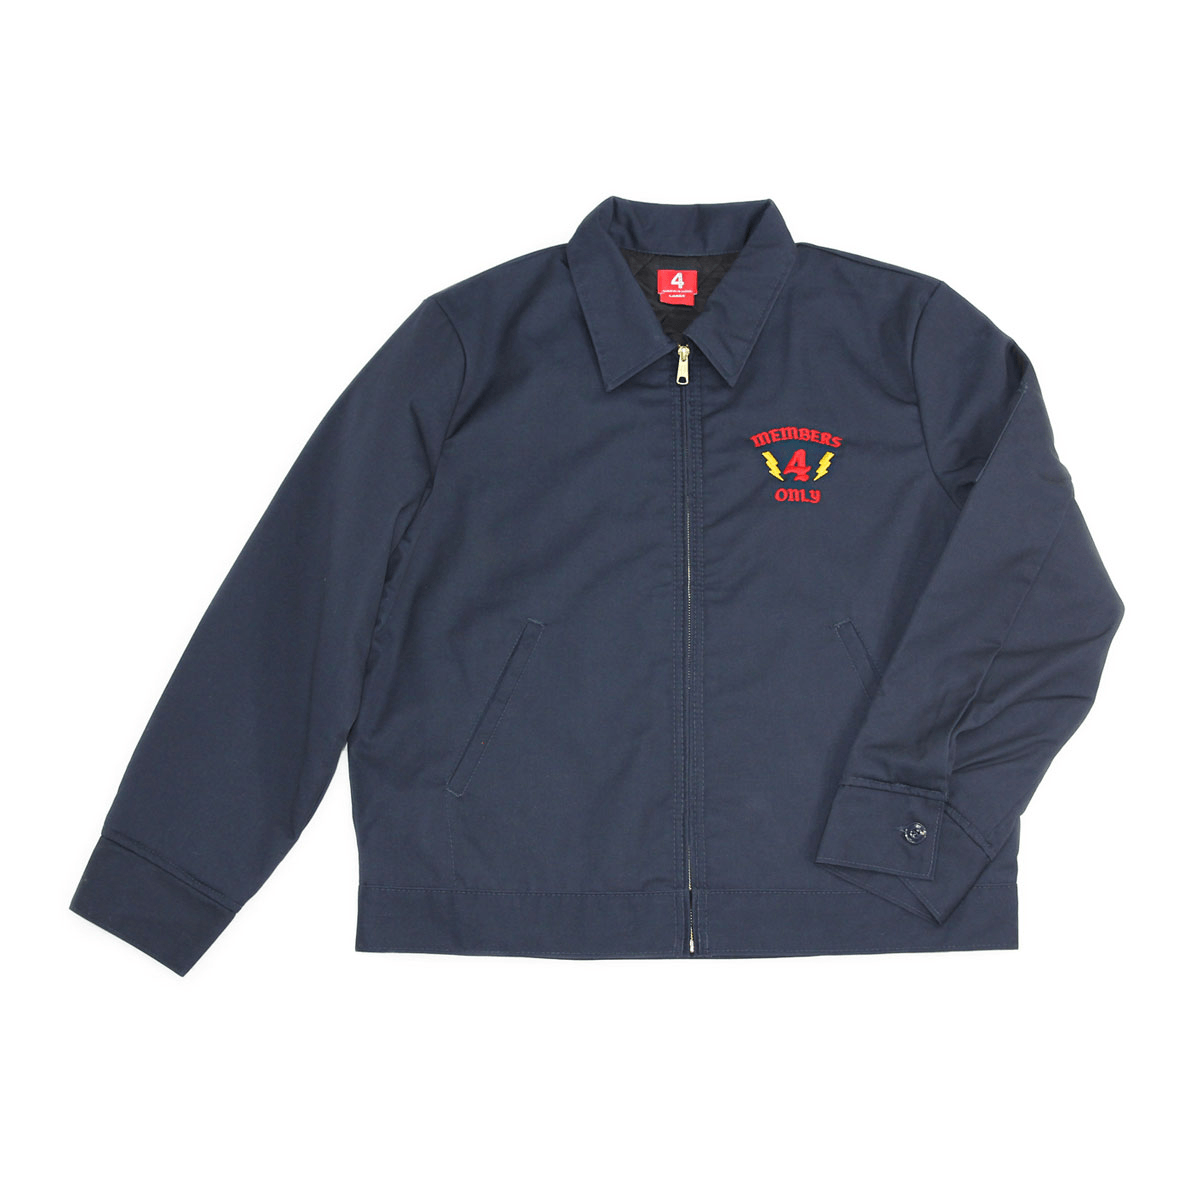 members only worker jacket navy 4hunnid shop